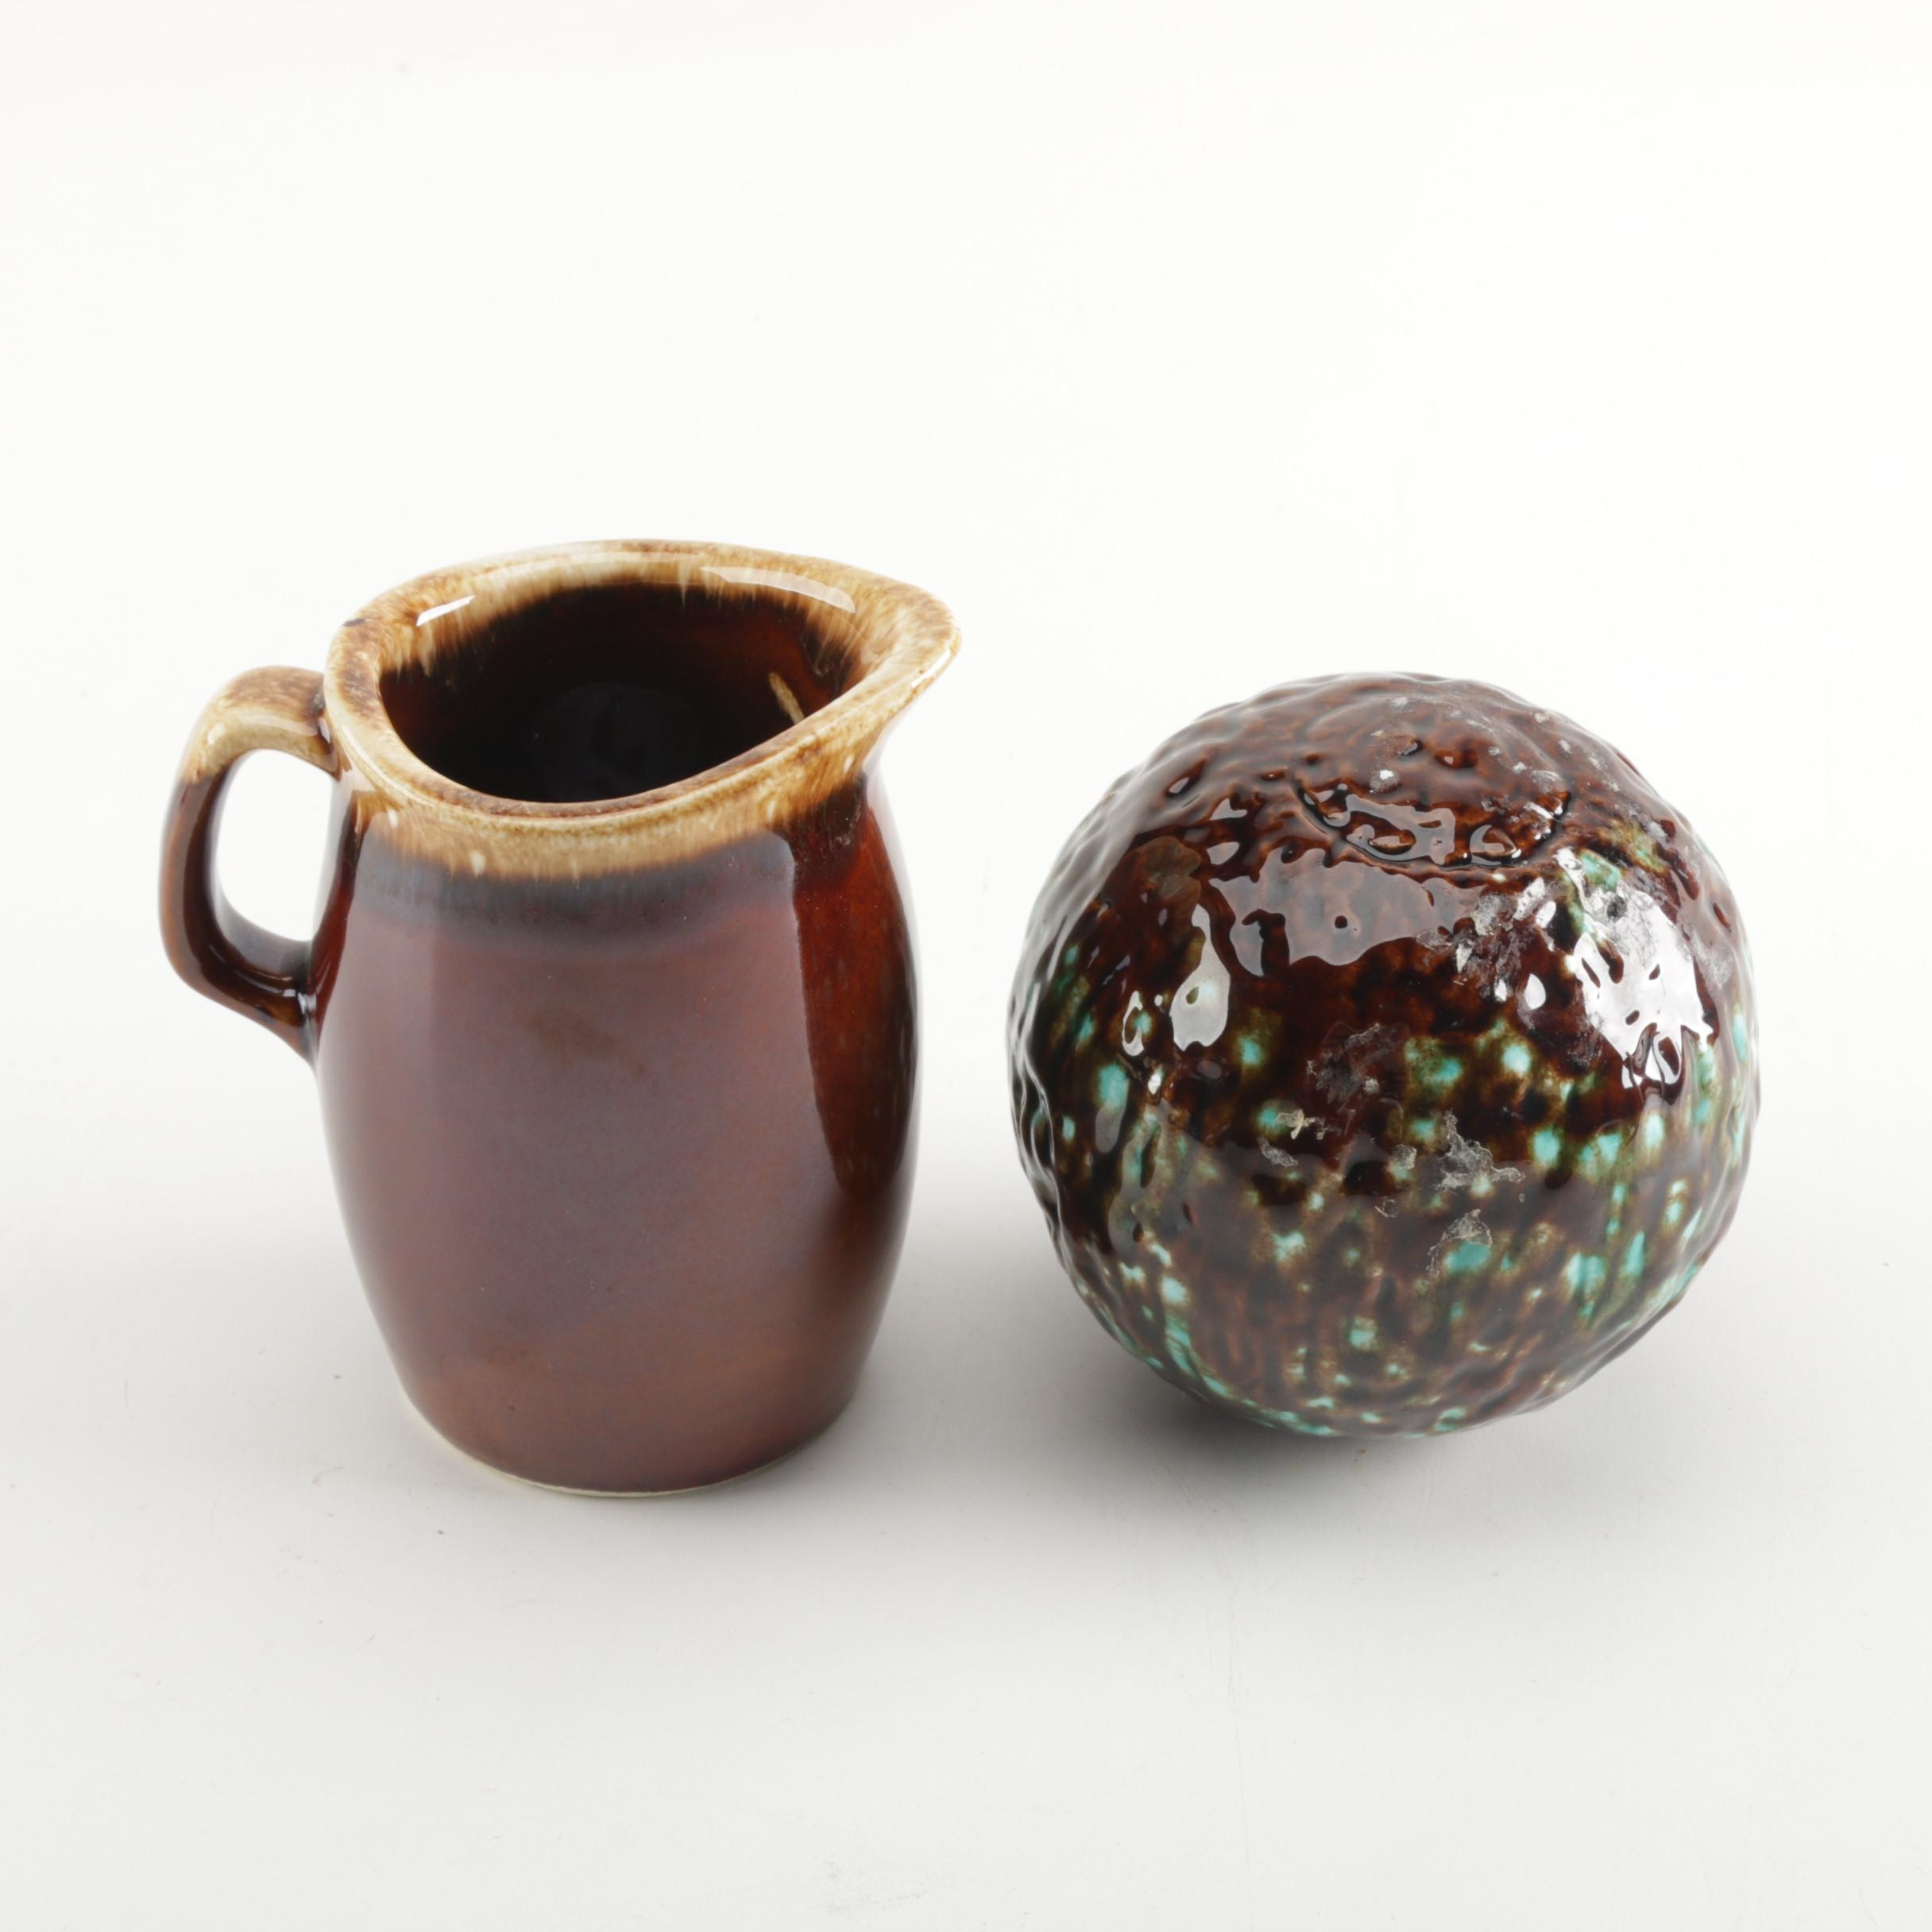 Brown Glazed Hull Pottery Pitcher and Ceramic Decor